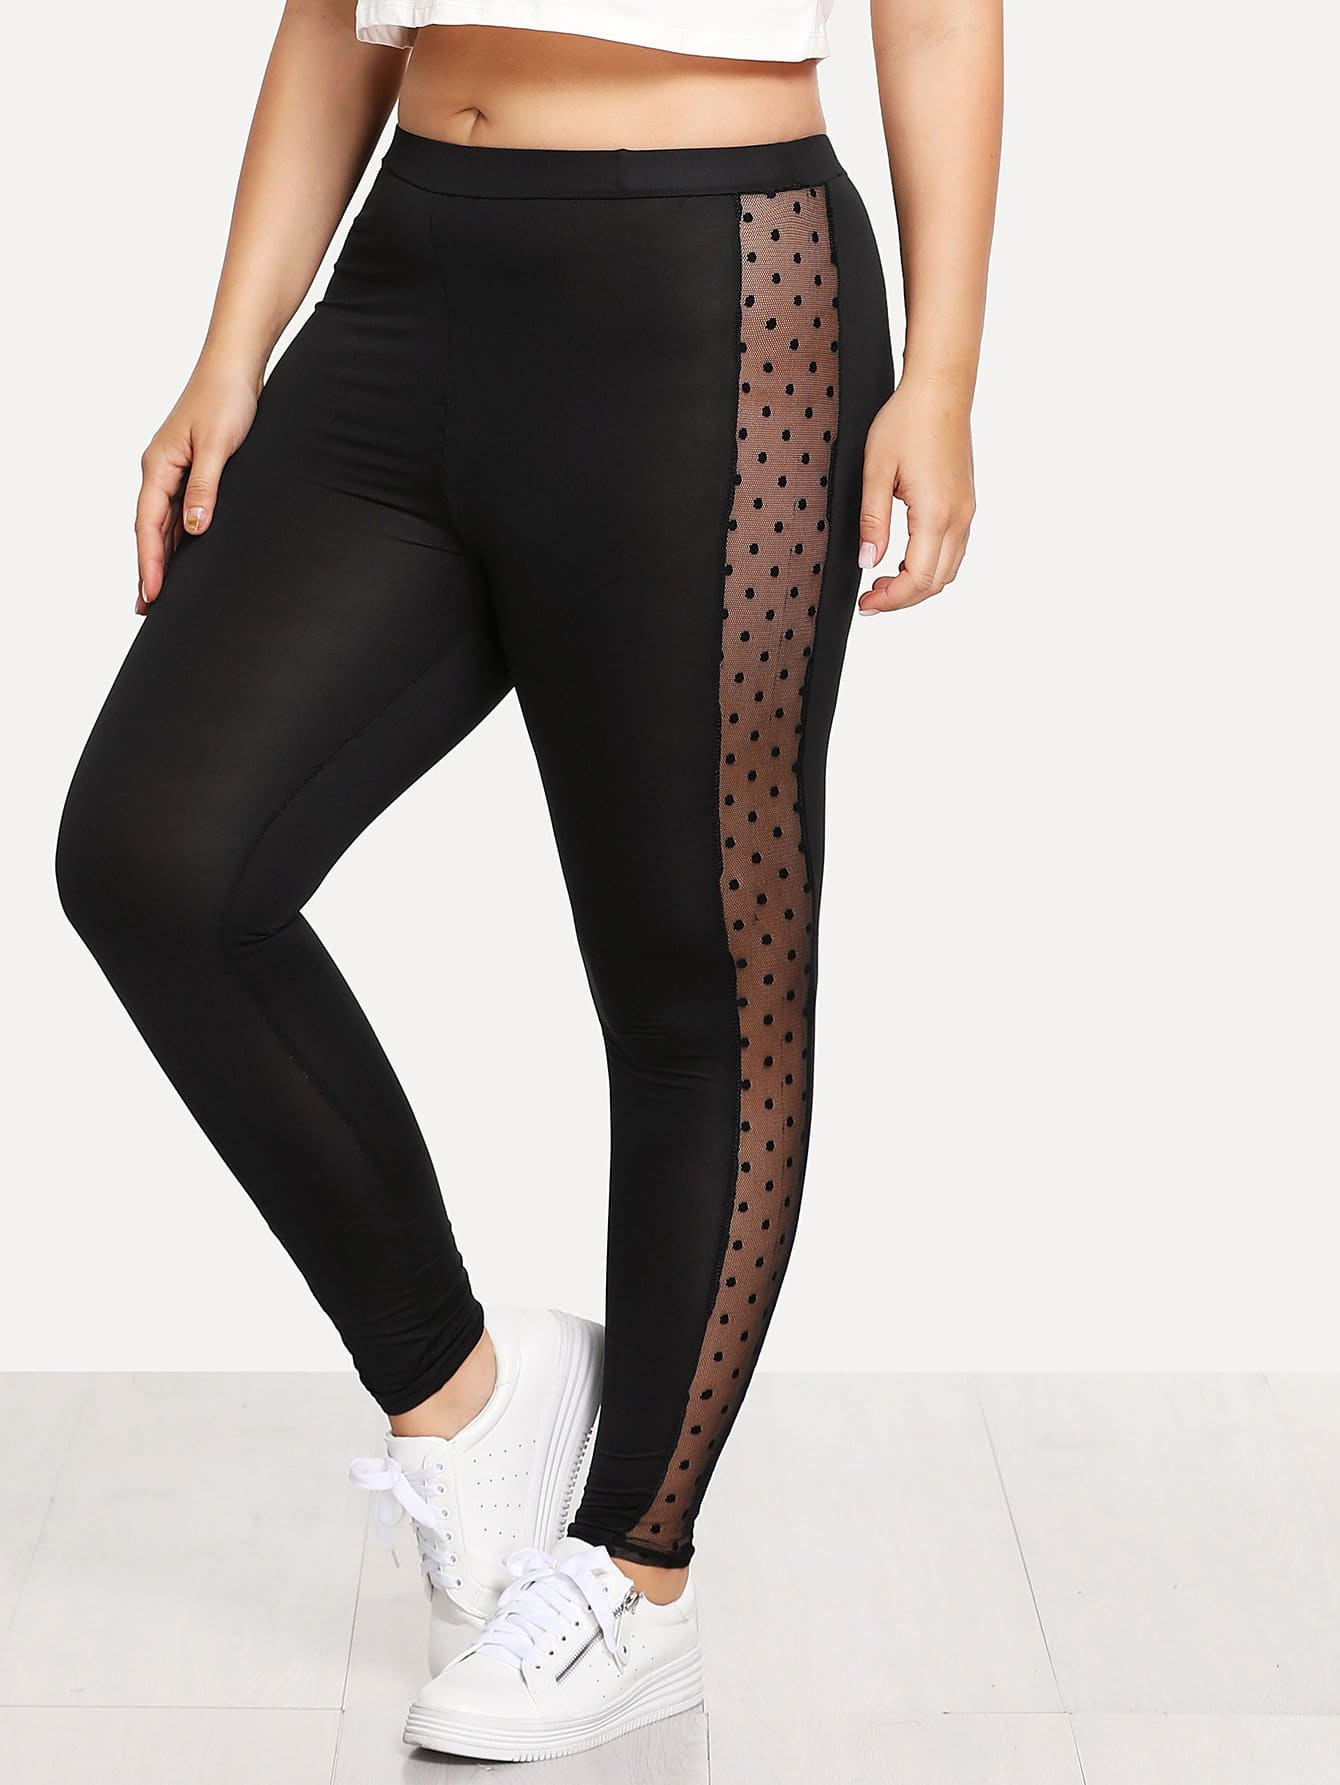 Sheer Mesh Spot Panel Leggings sheer plus size mesh panel workout leggings